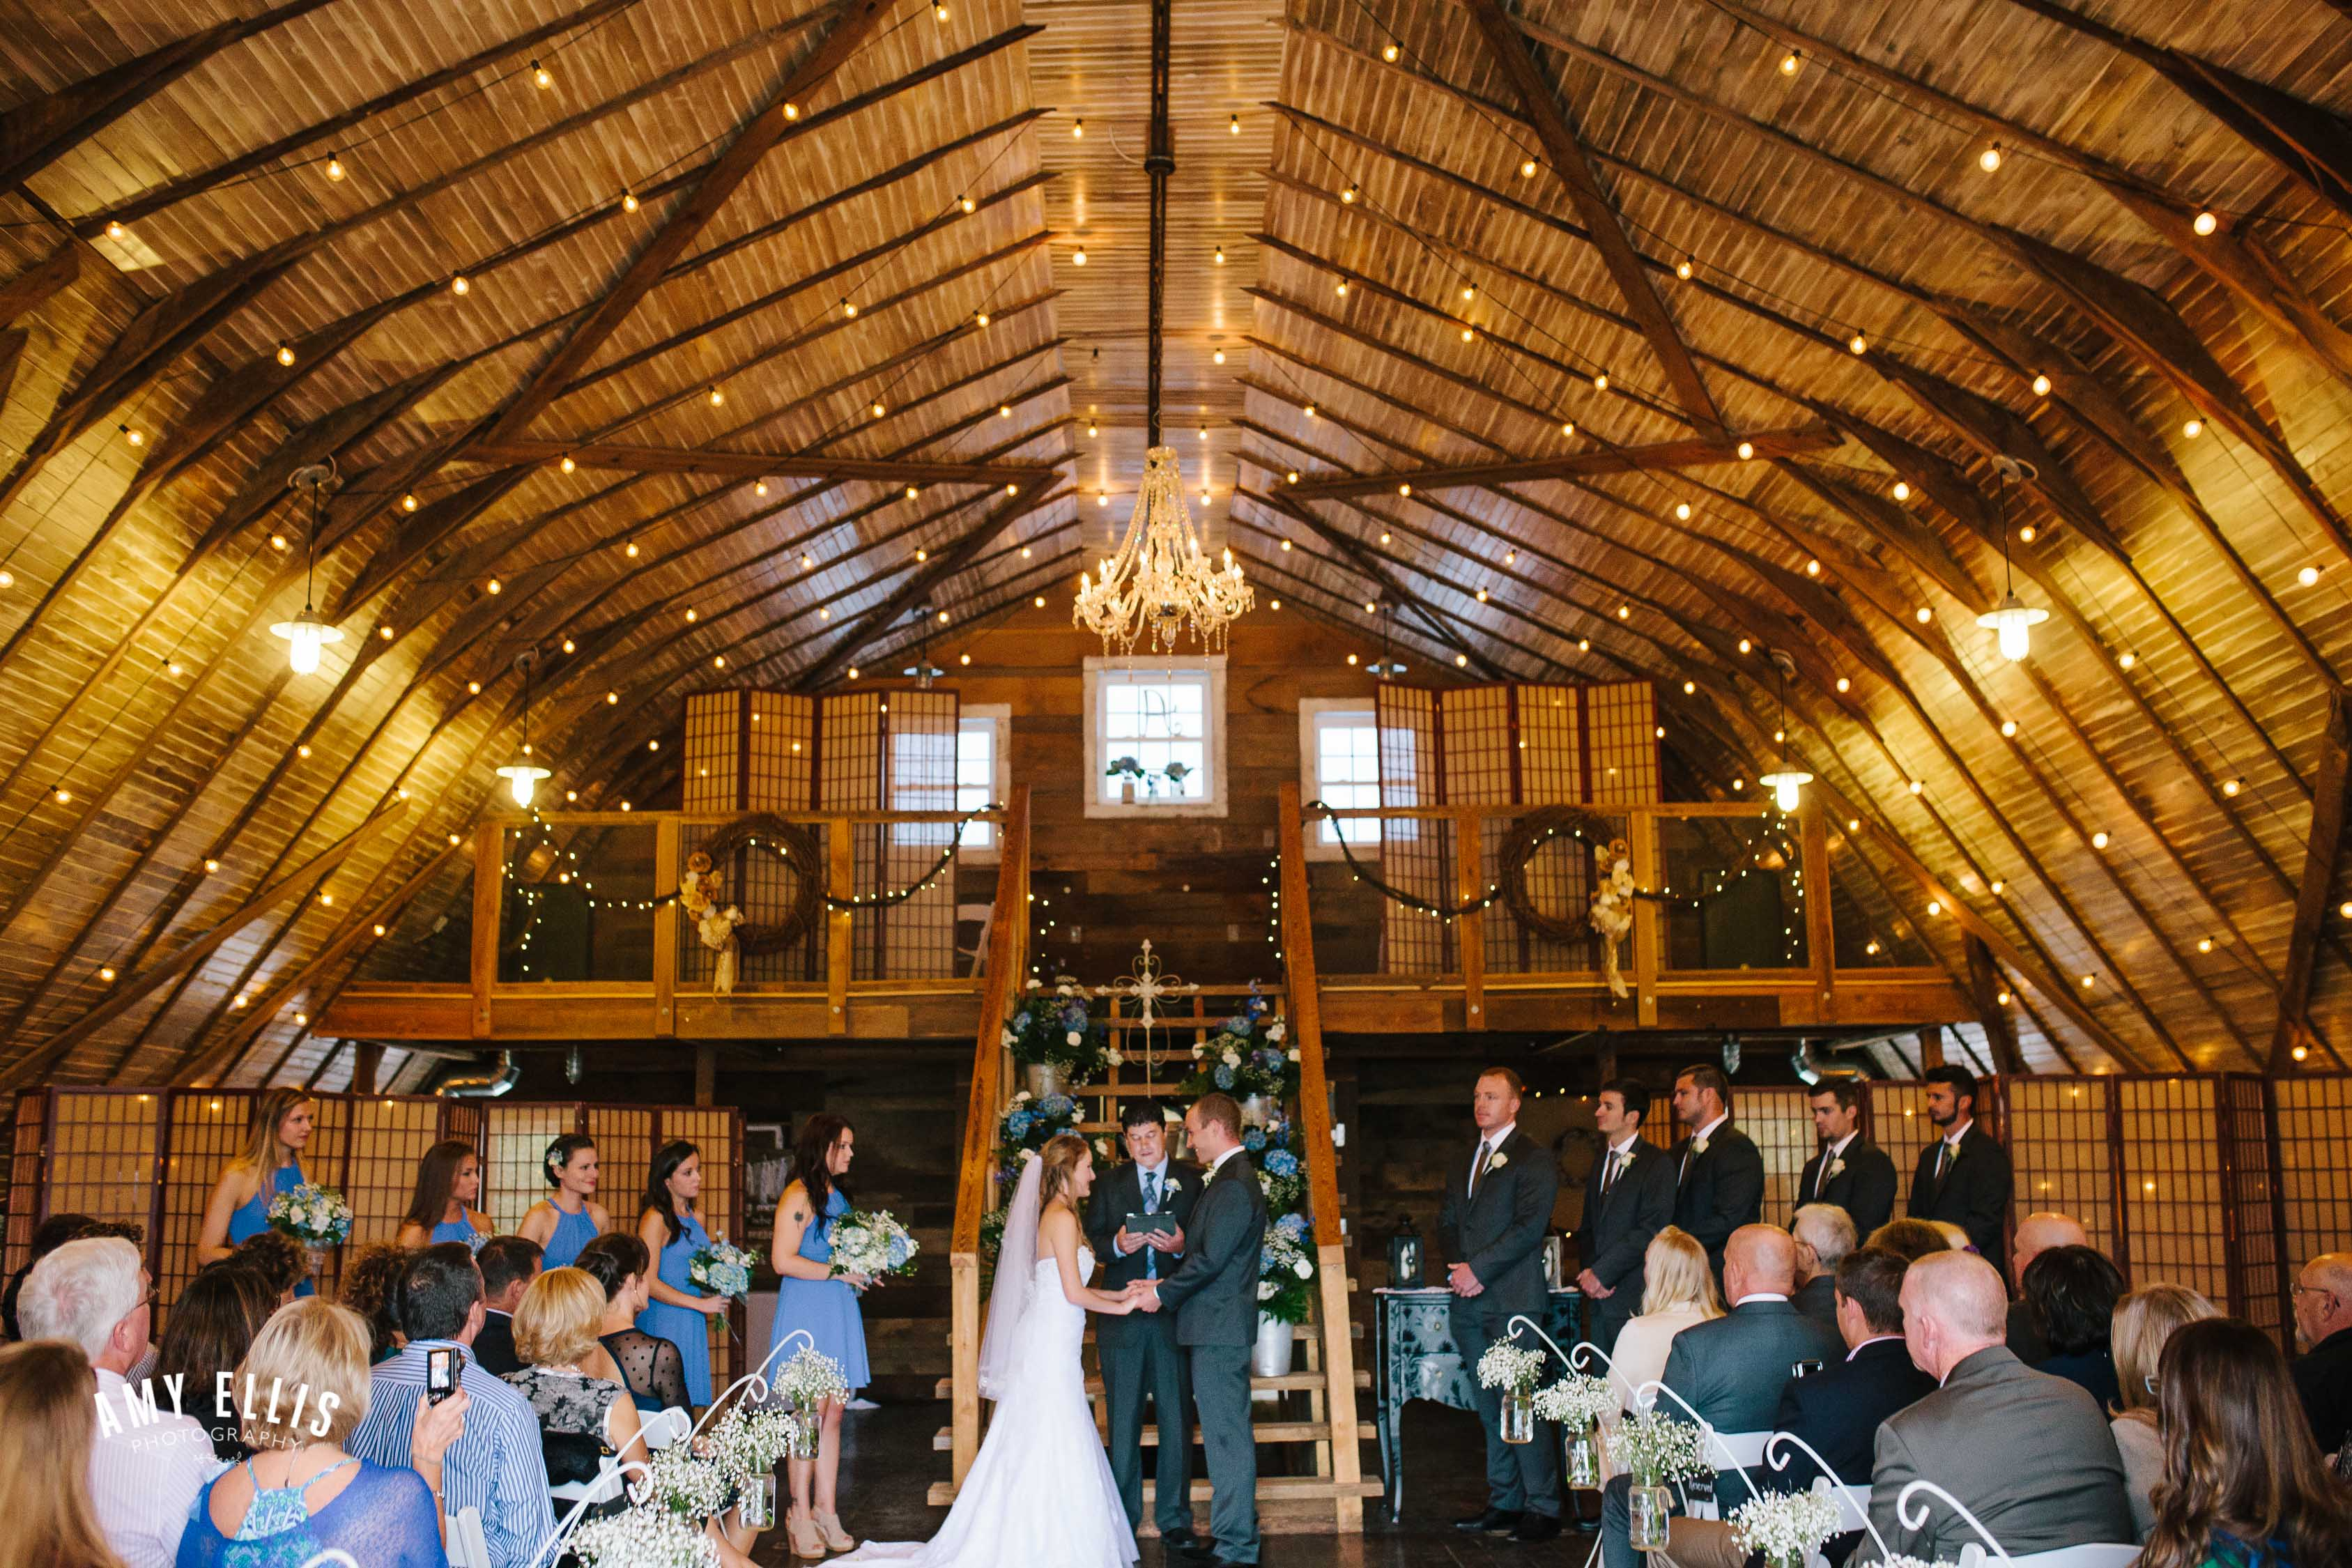 Barn Wedding Price Amp Availability The Barn At Blueberry Hill